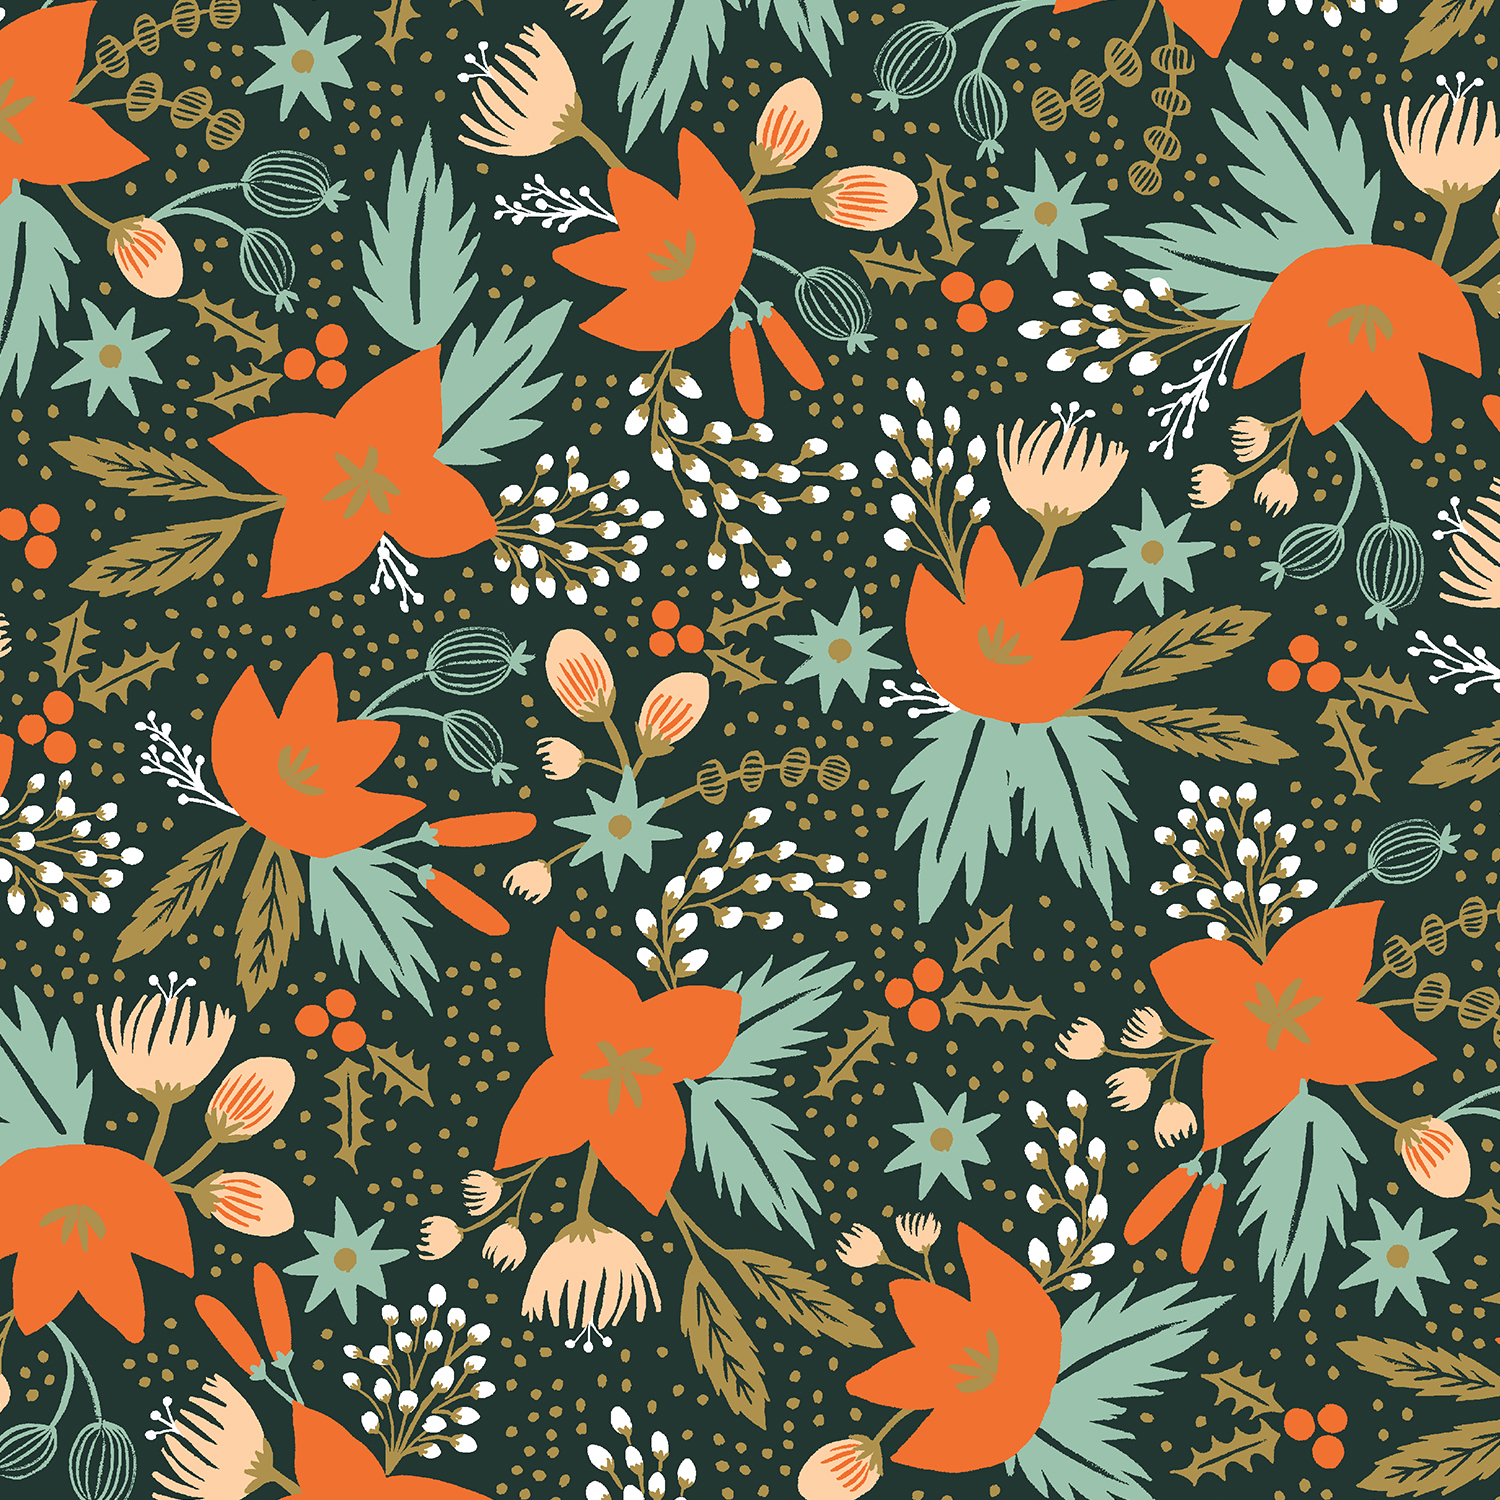 Holiday Classics - Evergreen Poinsettia*Rayon* - By Rifle Paper Co. For Cotton And Steel